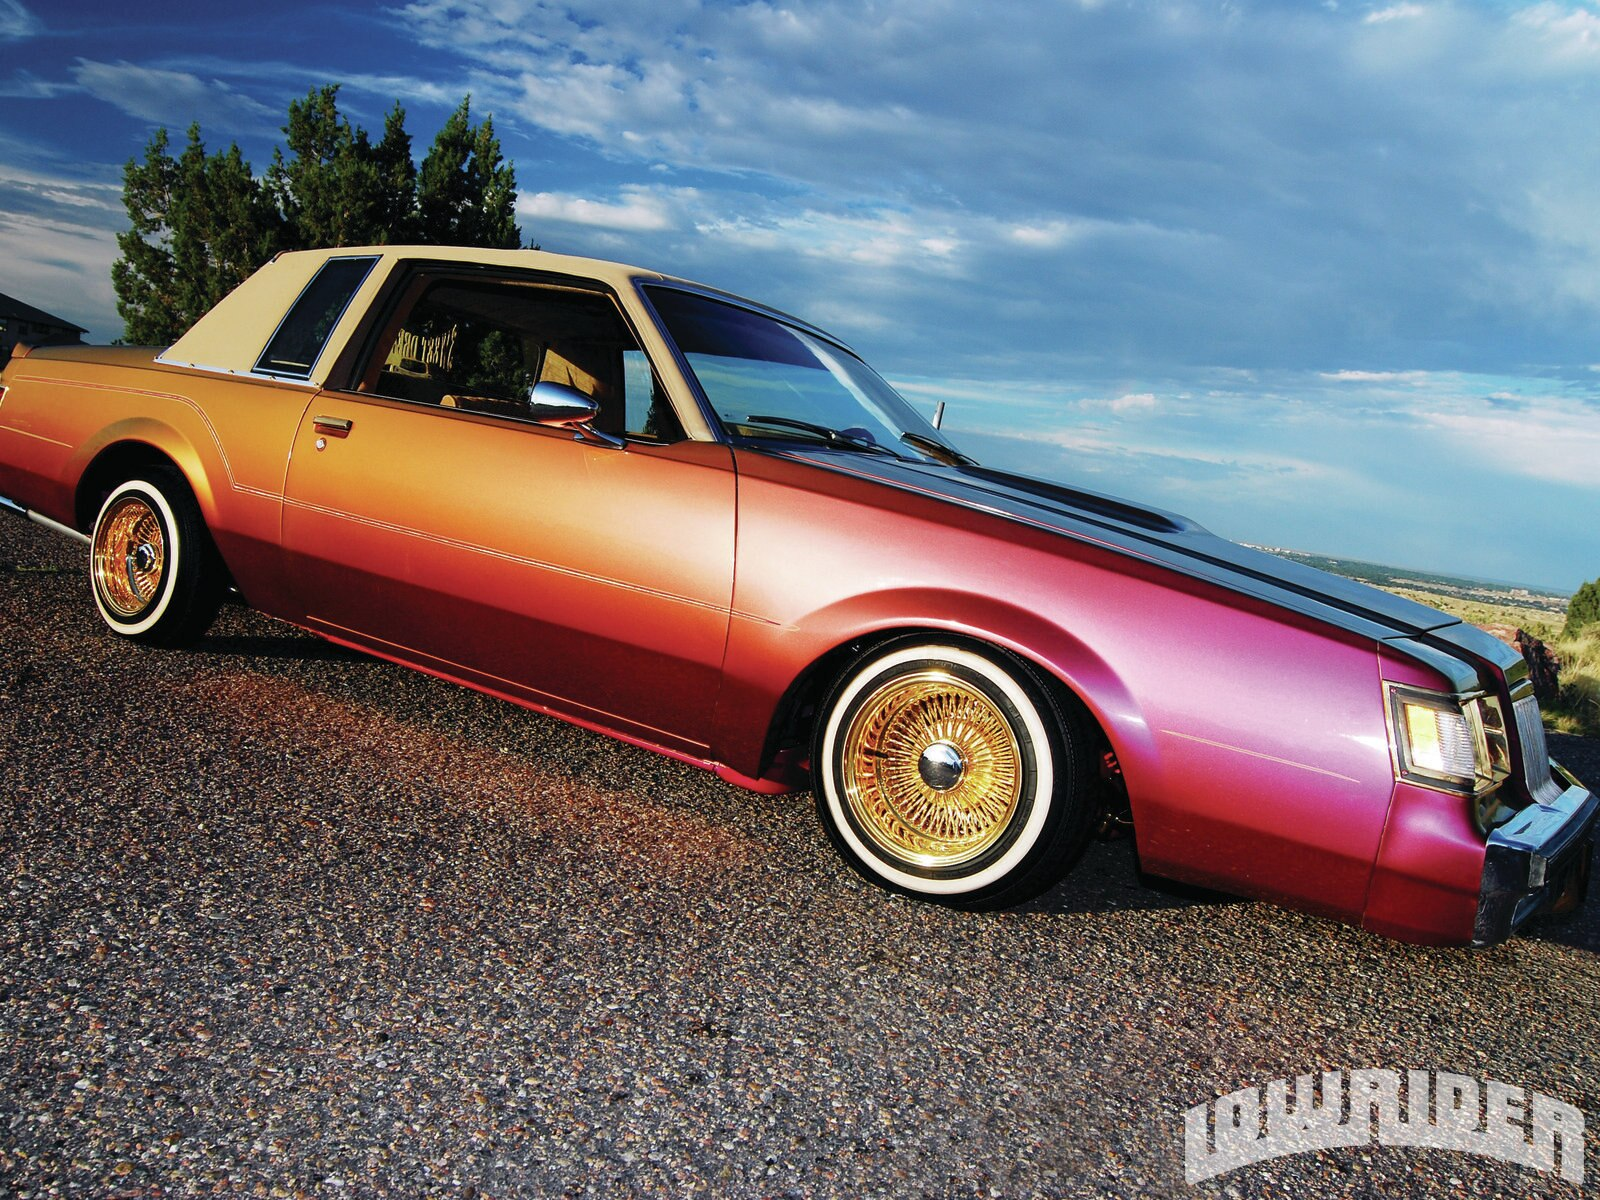 lrmp_1108_01_z-1984_buick_regal-side_view2